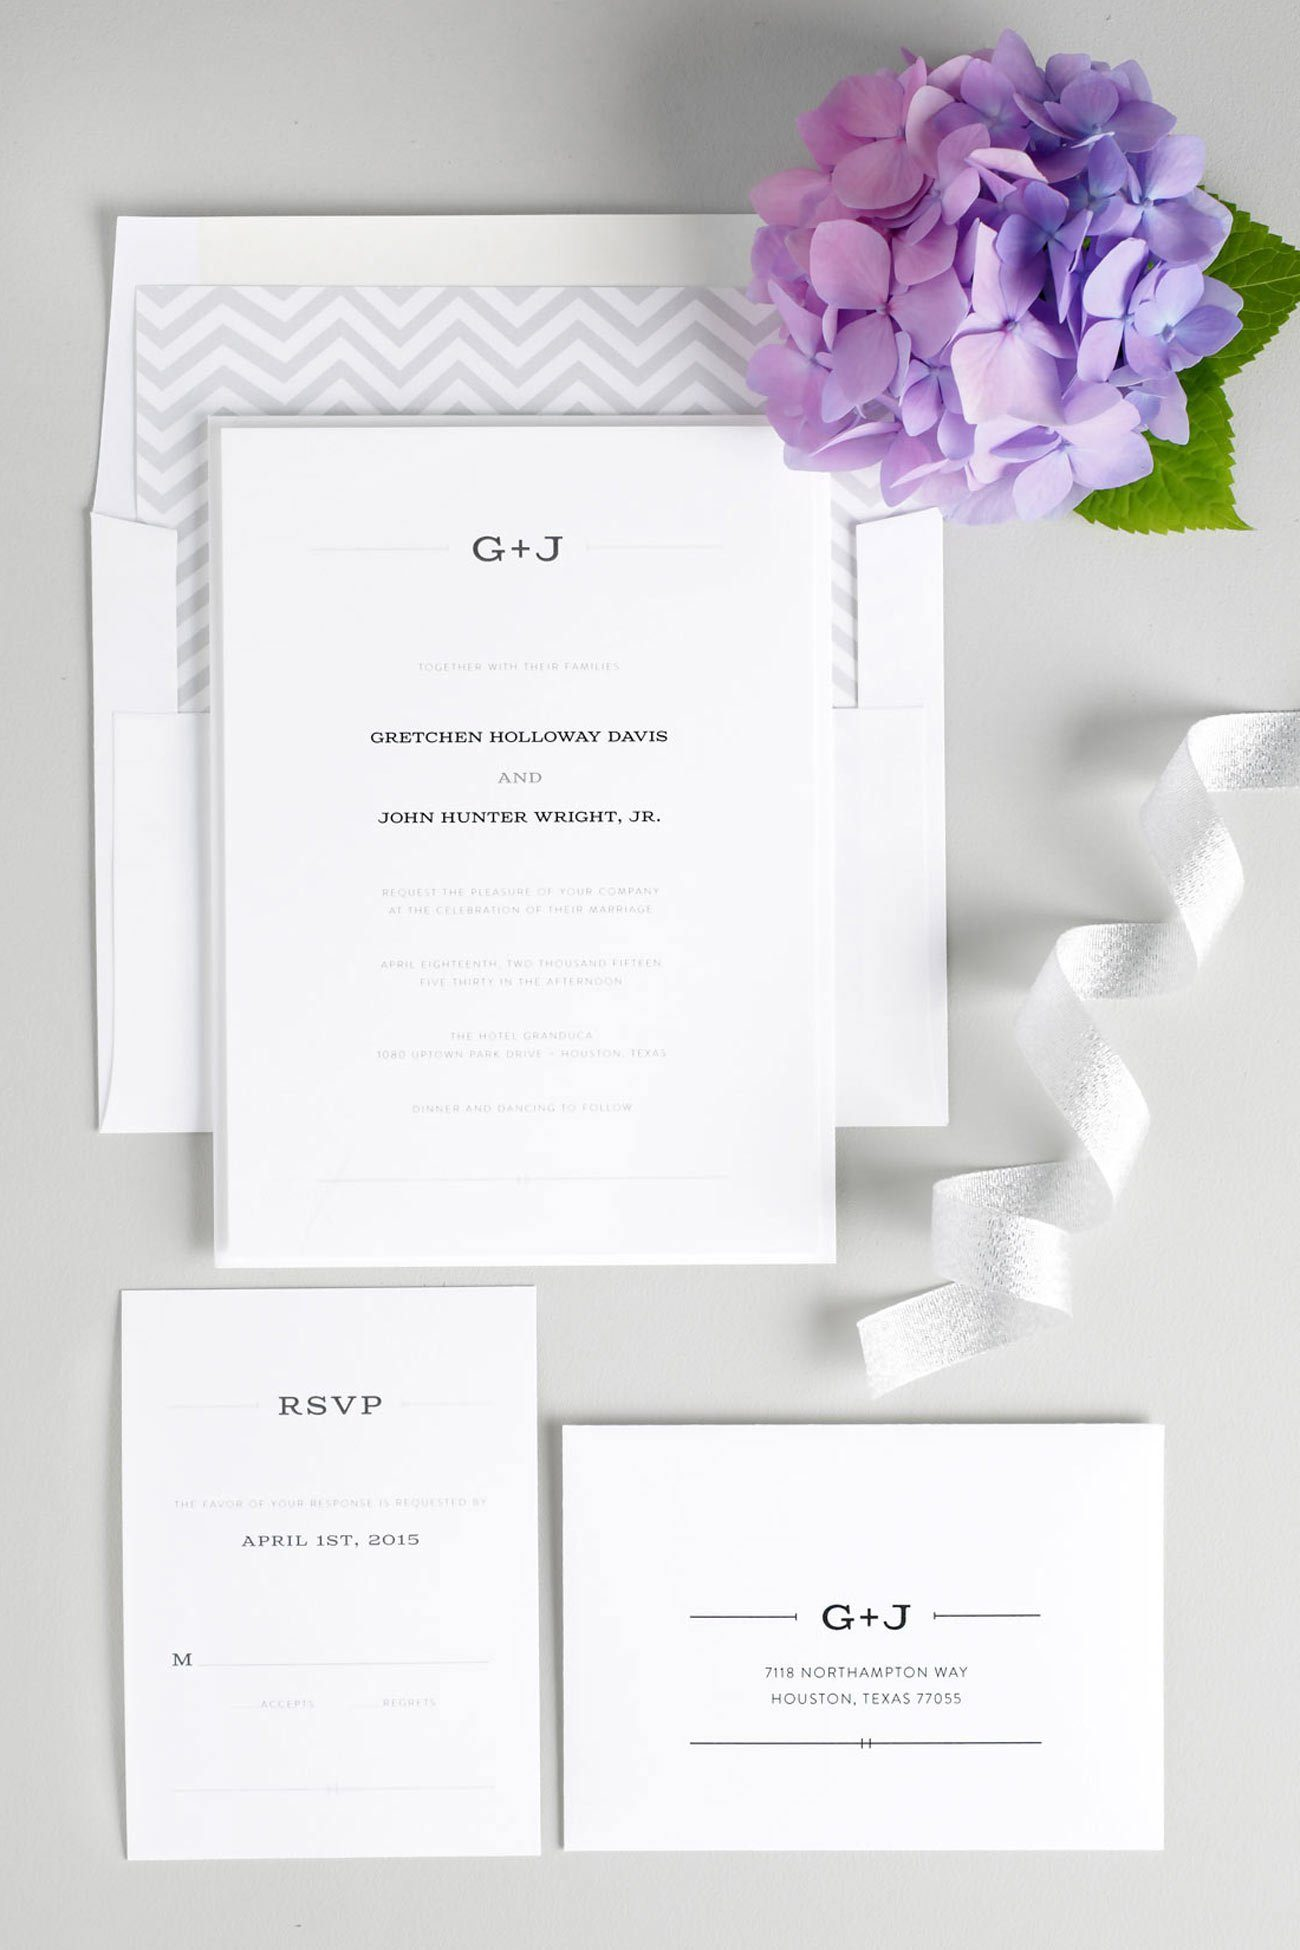 Rustic wedding invitations with a simple monogram